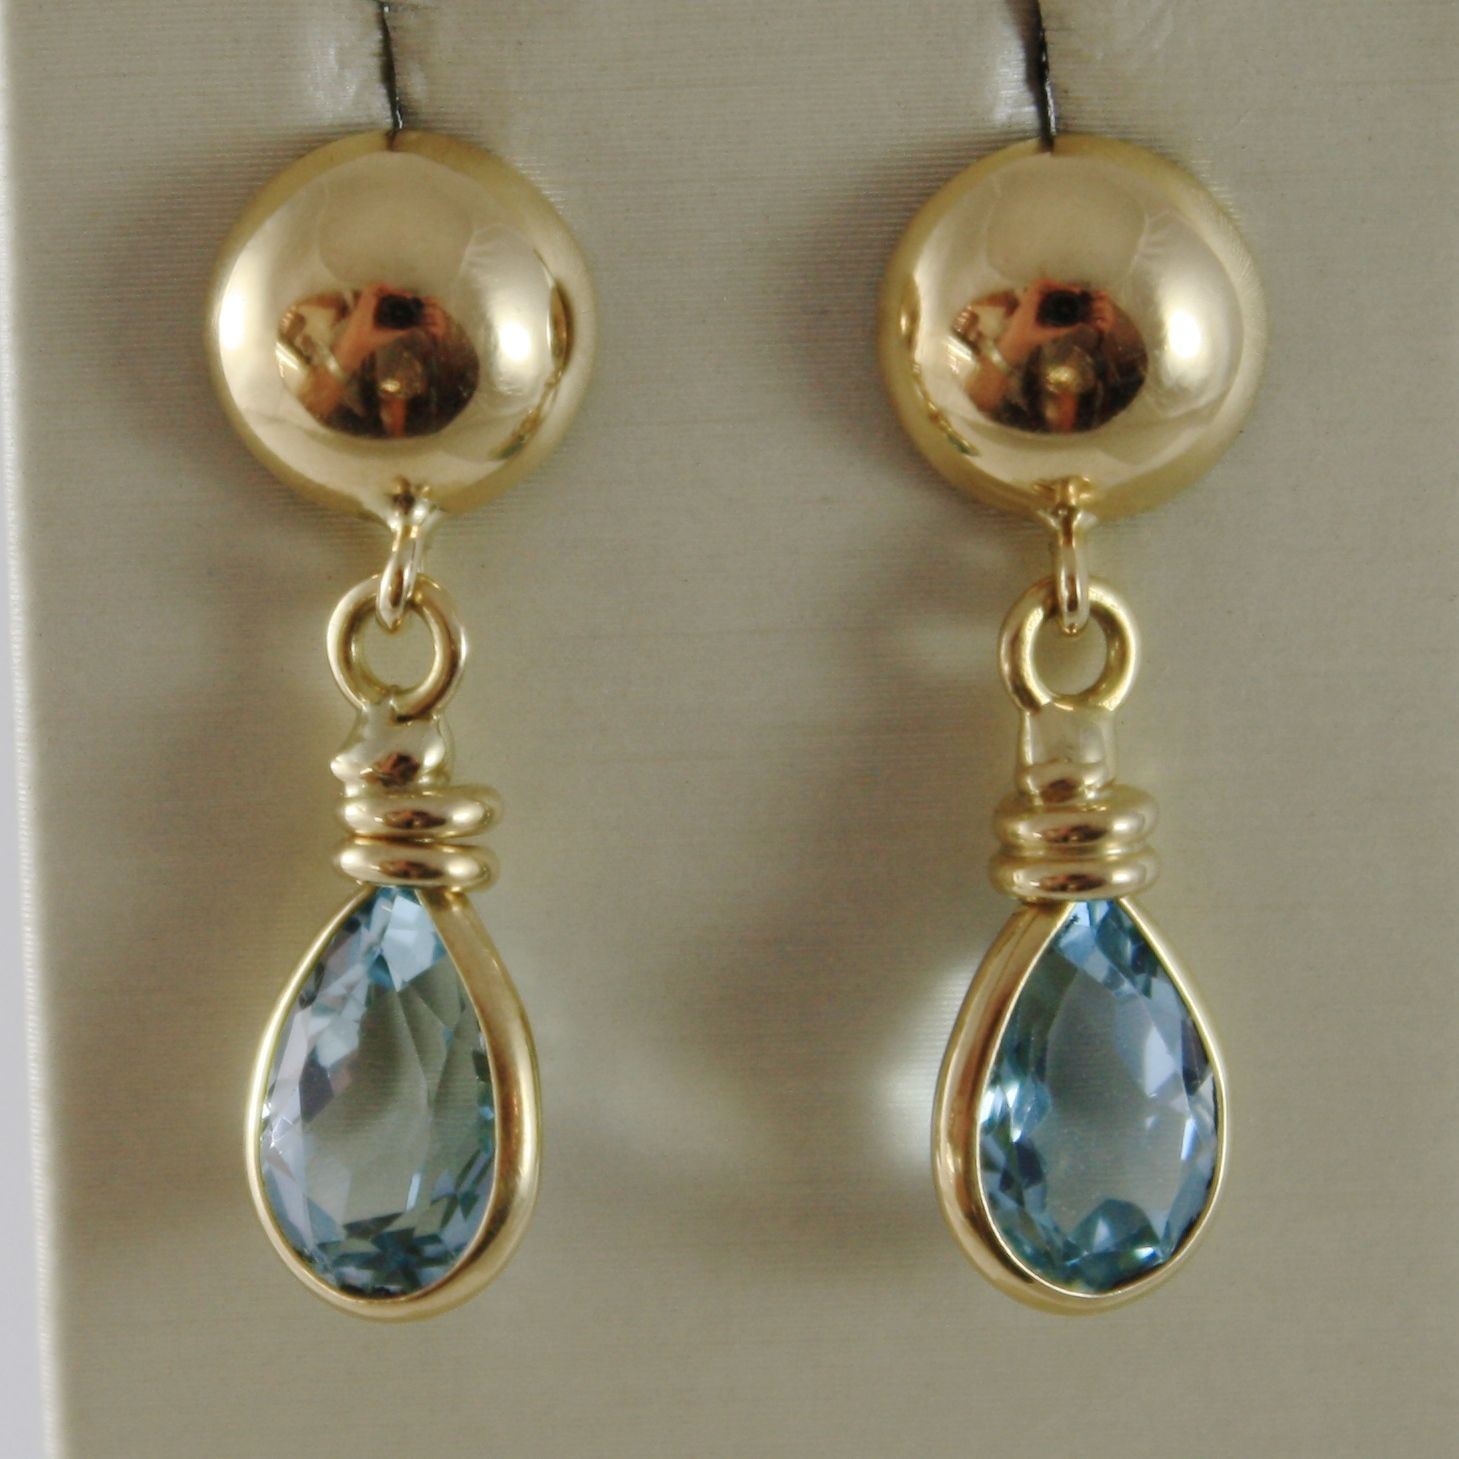 SOLID 18K YELLOW GOLD 27 MM LONG EARRINGS WITH DROP BLUE TOPAZ, MADE IN ITALY